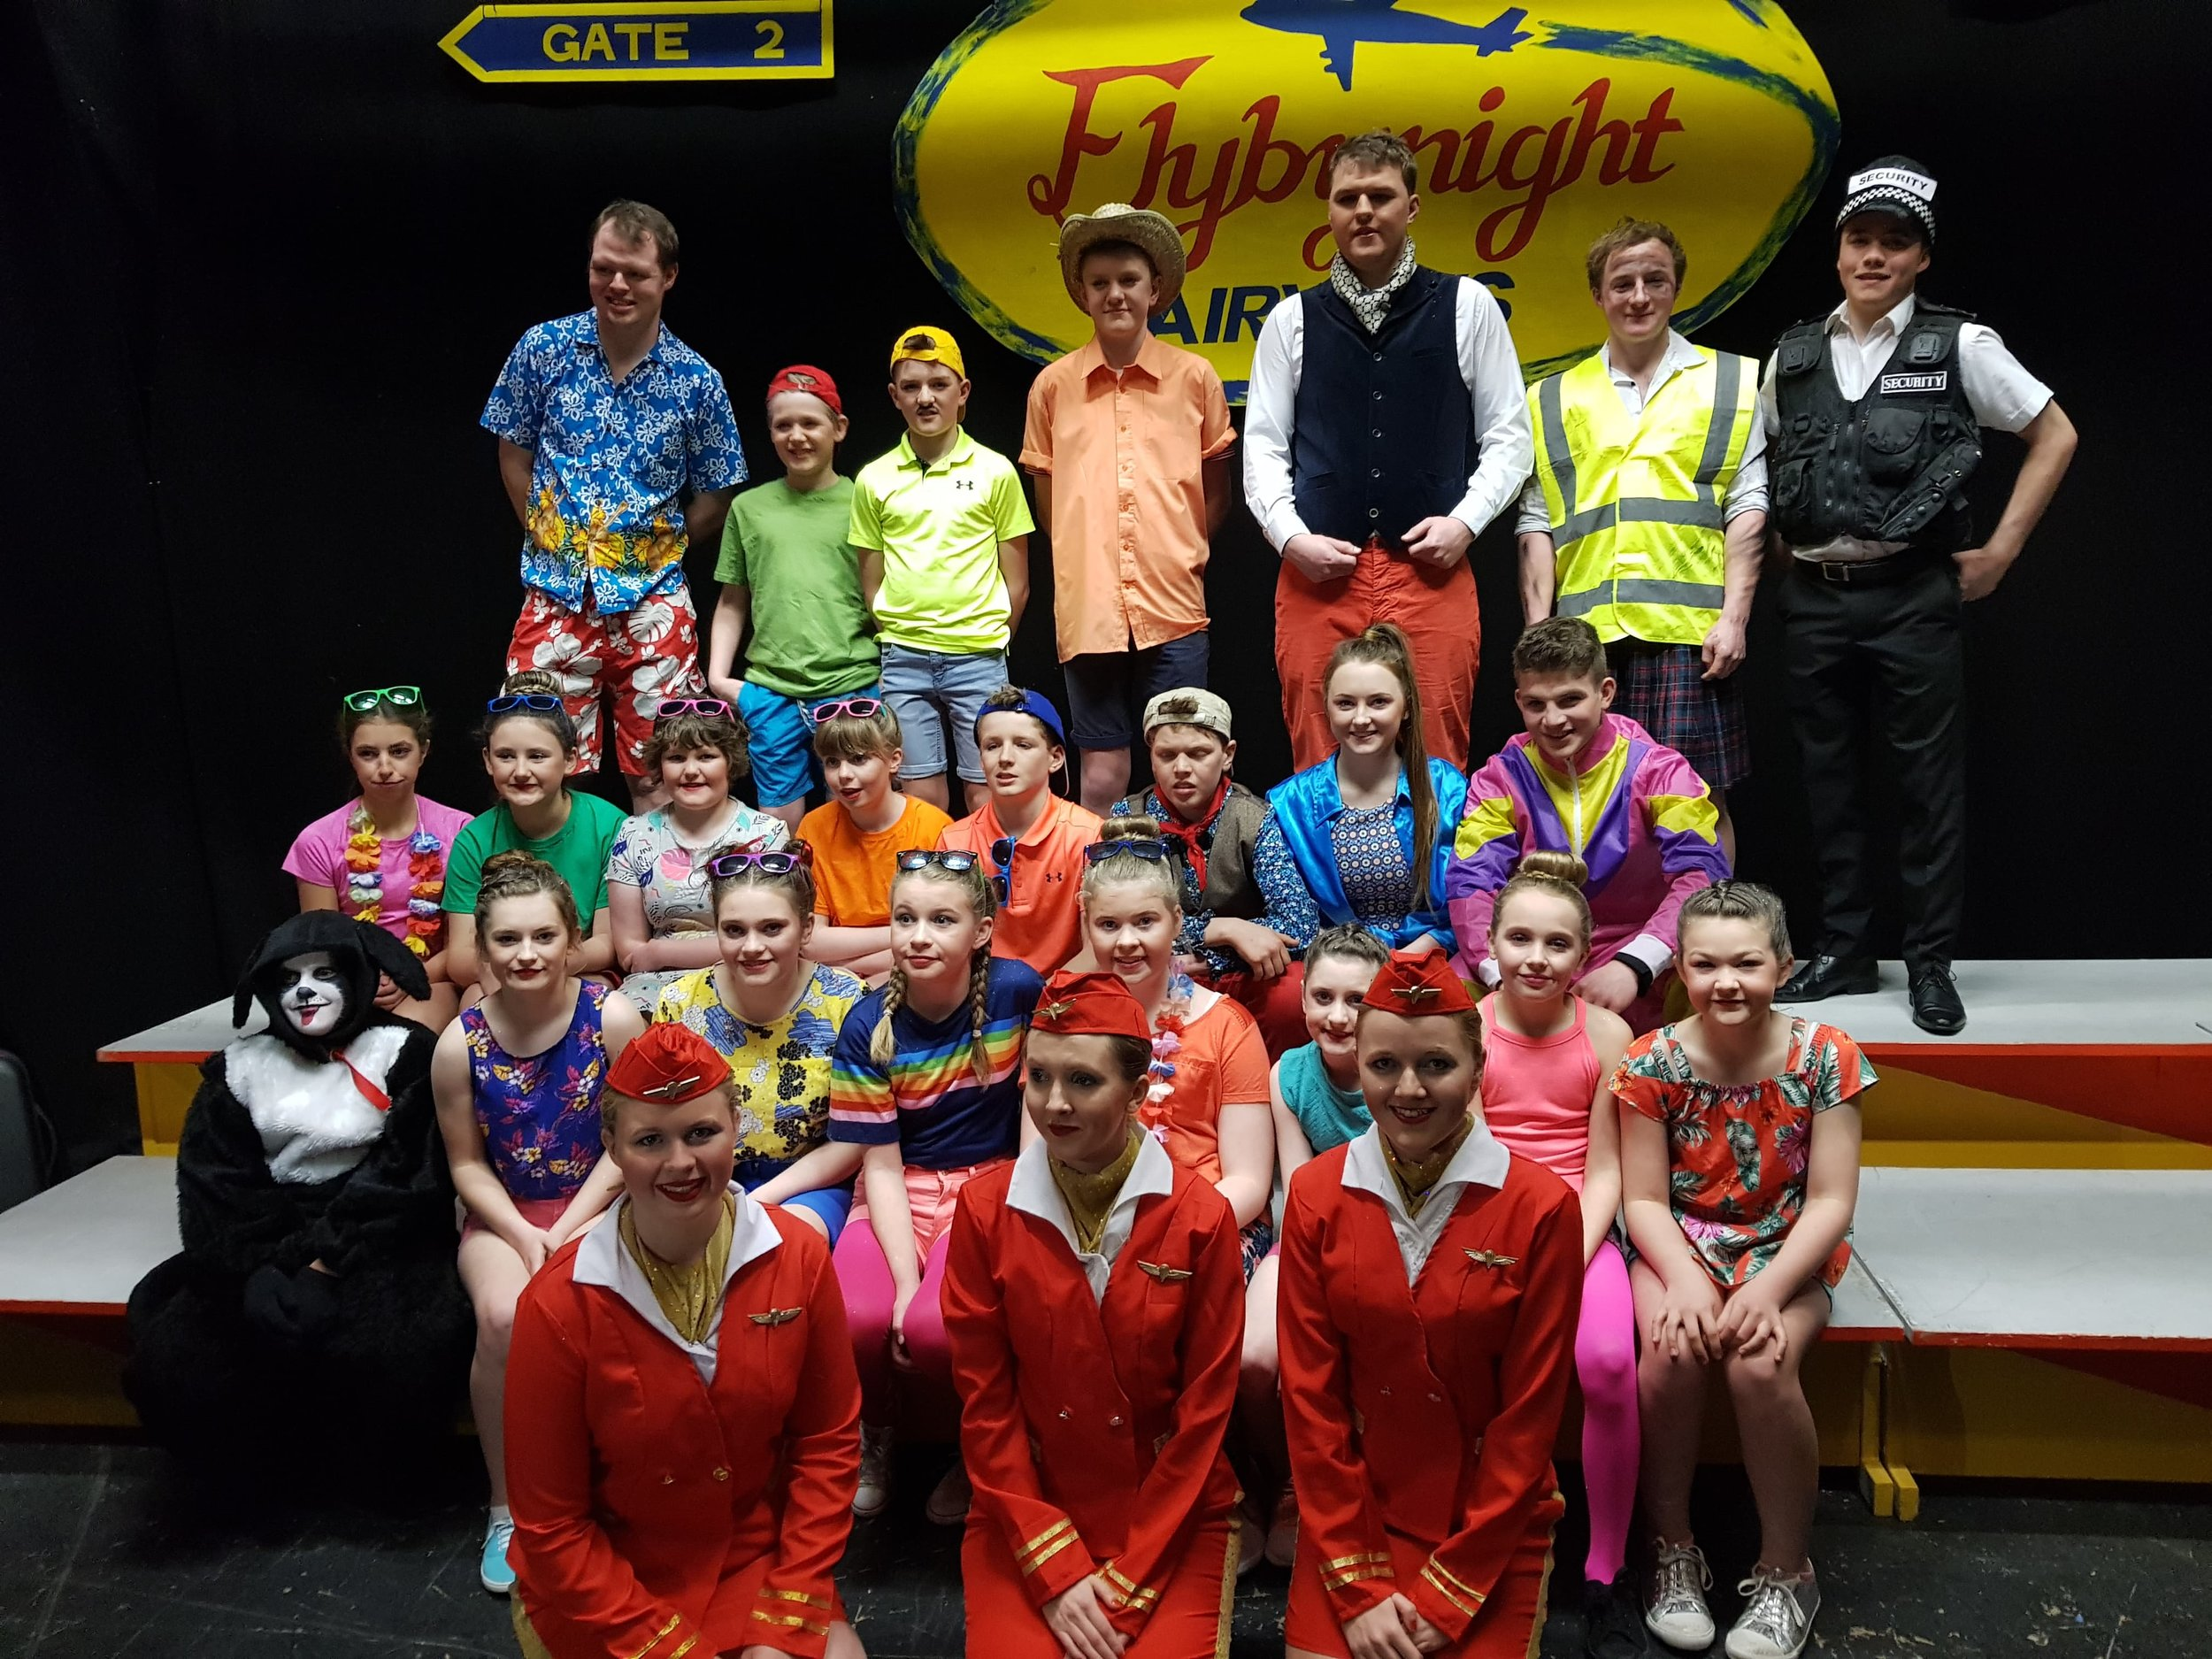 Aberedw YFC - 'Flybynight Airways'